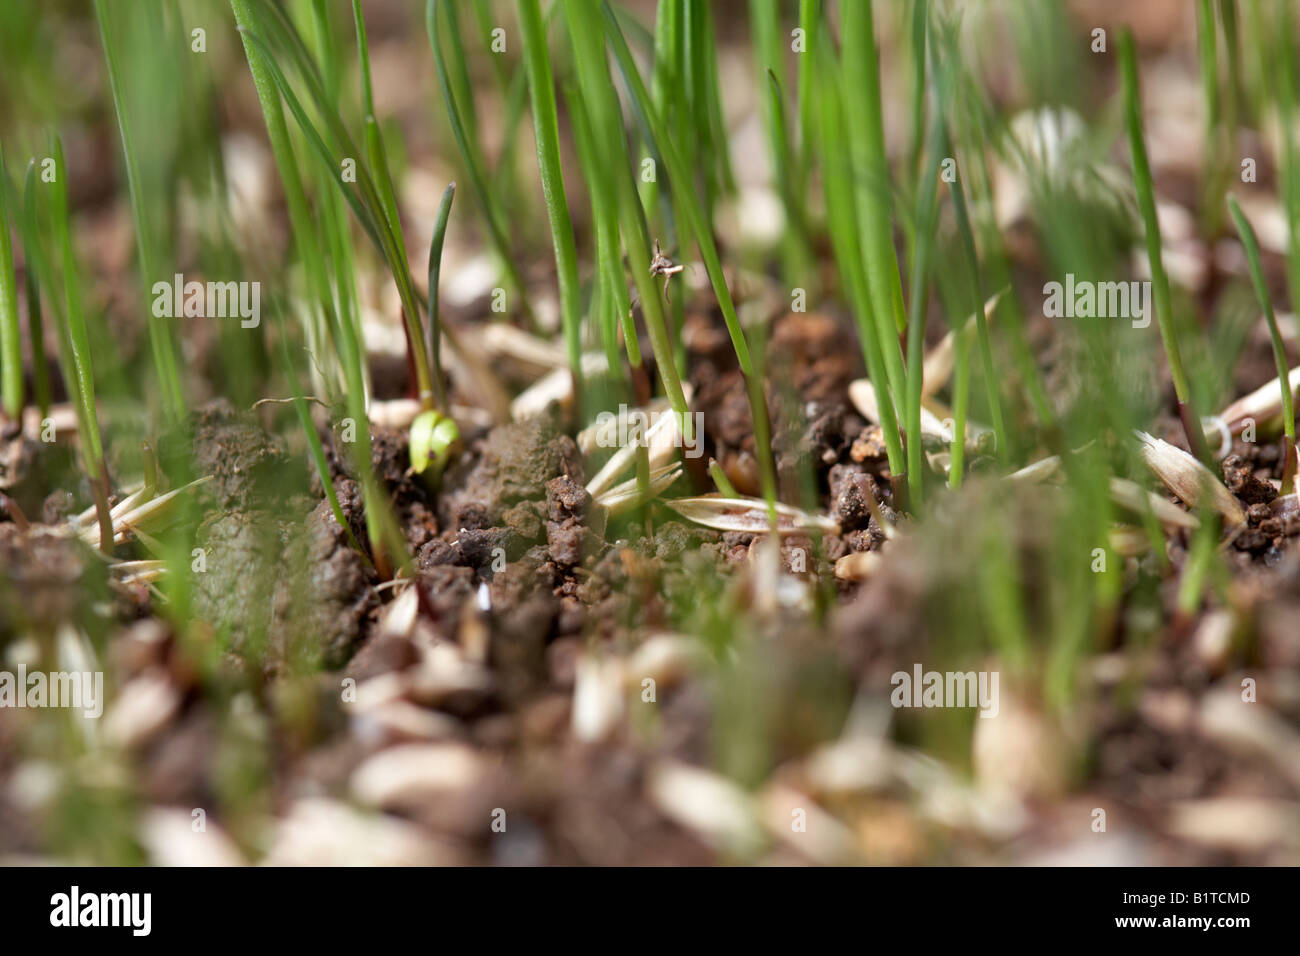 leisure emerald variety new grass growing from grass seed in a garden , northern ireland - Stock Image